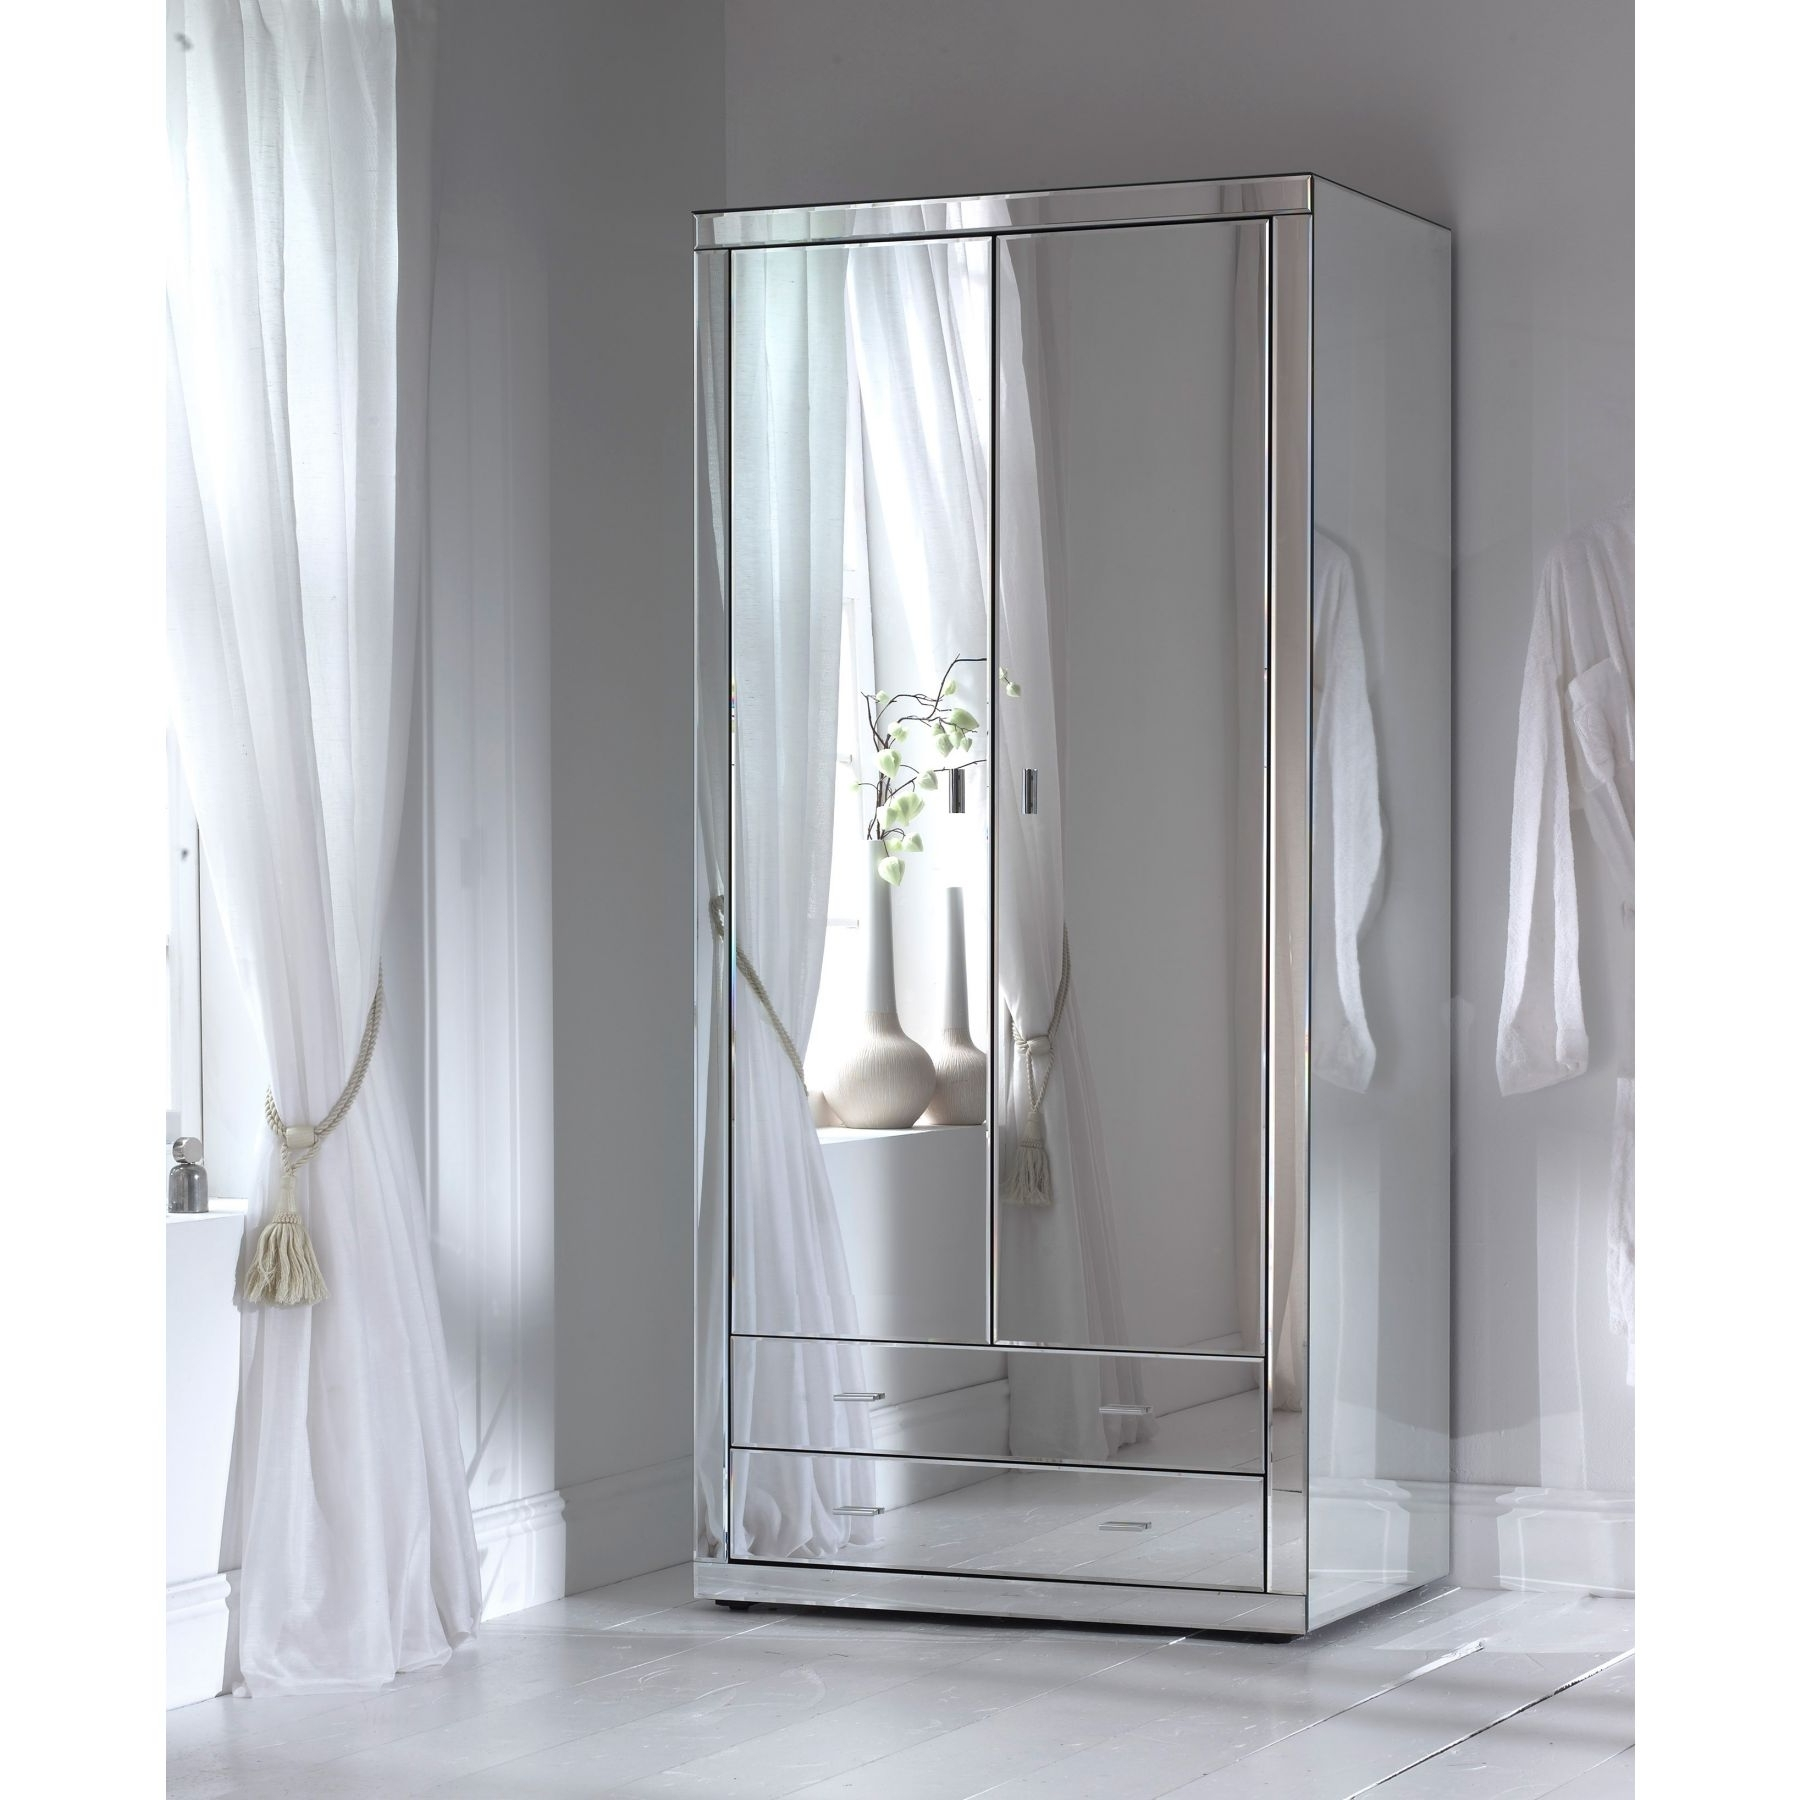 Recent All Mirror Wardrobe – Blog Regarding Full Mirrored Wardrobes (View 11 of 15)